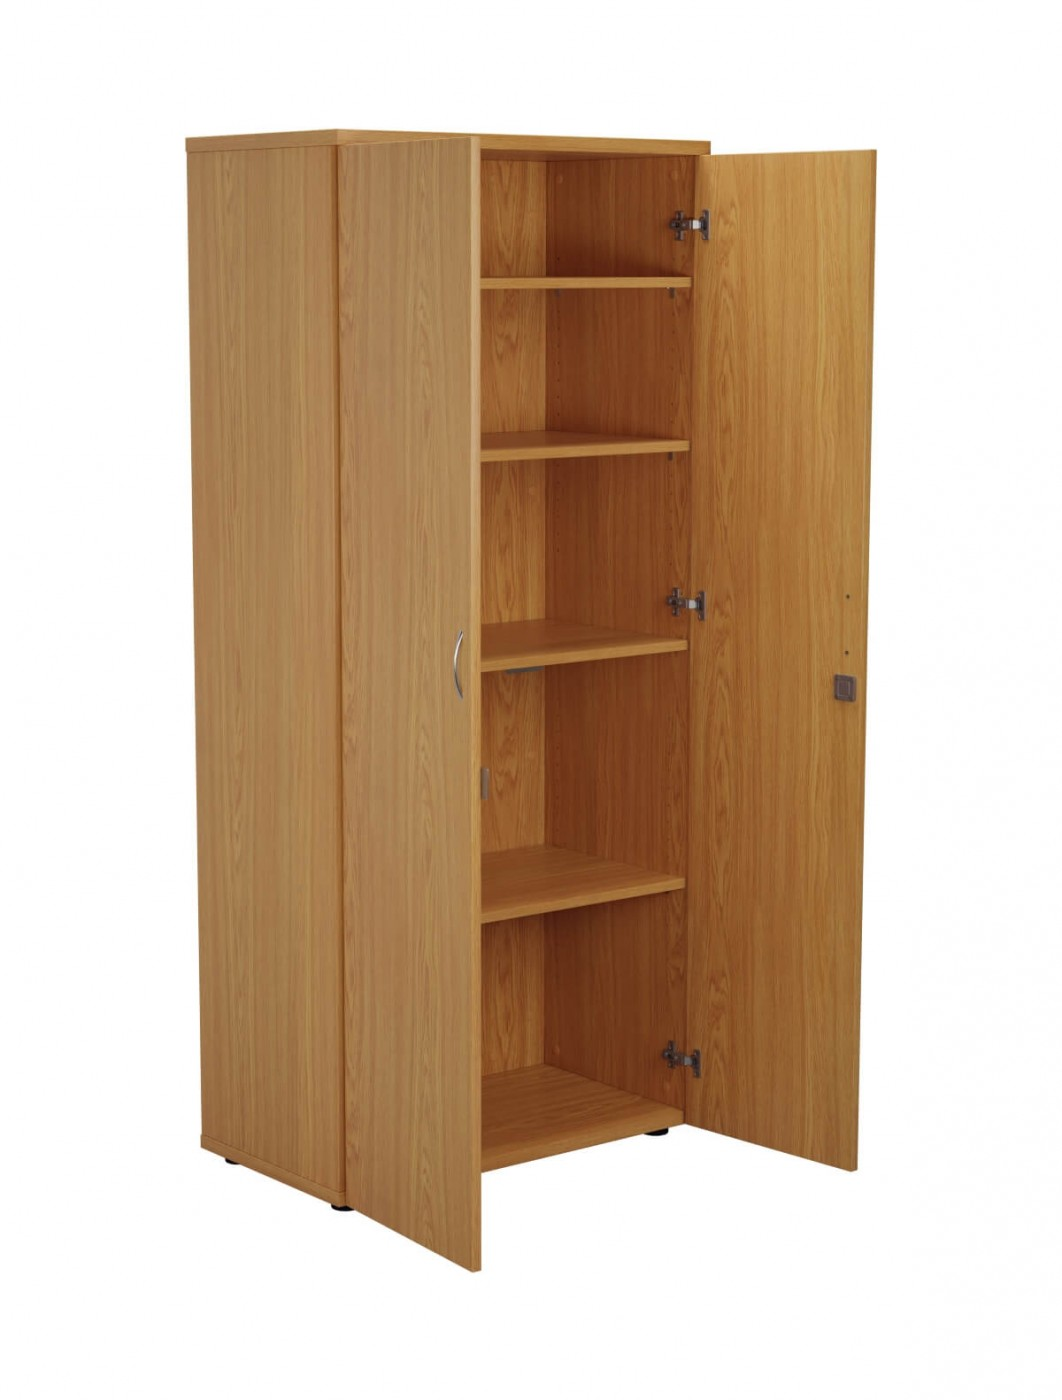 Beau Office Storage Cupboard   1.8m Cupboard TES1845CP Cupboards   Enlarged View